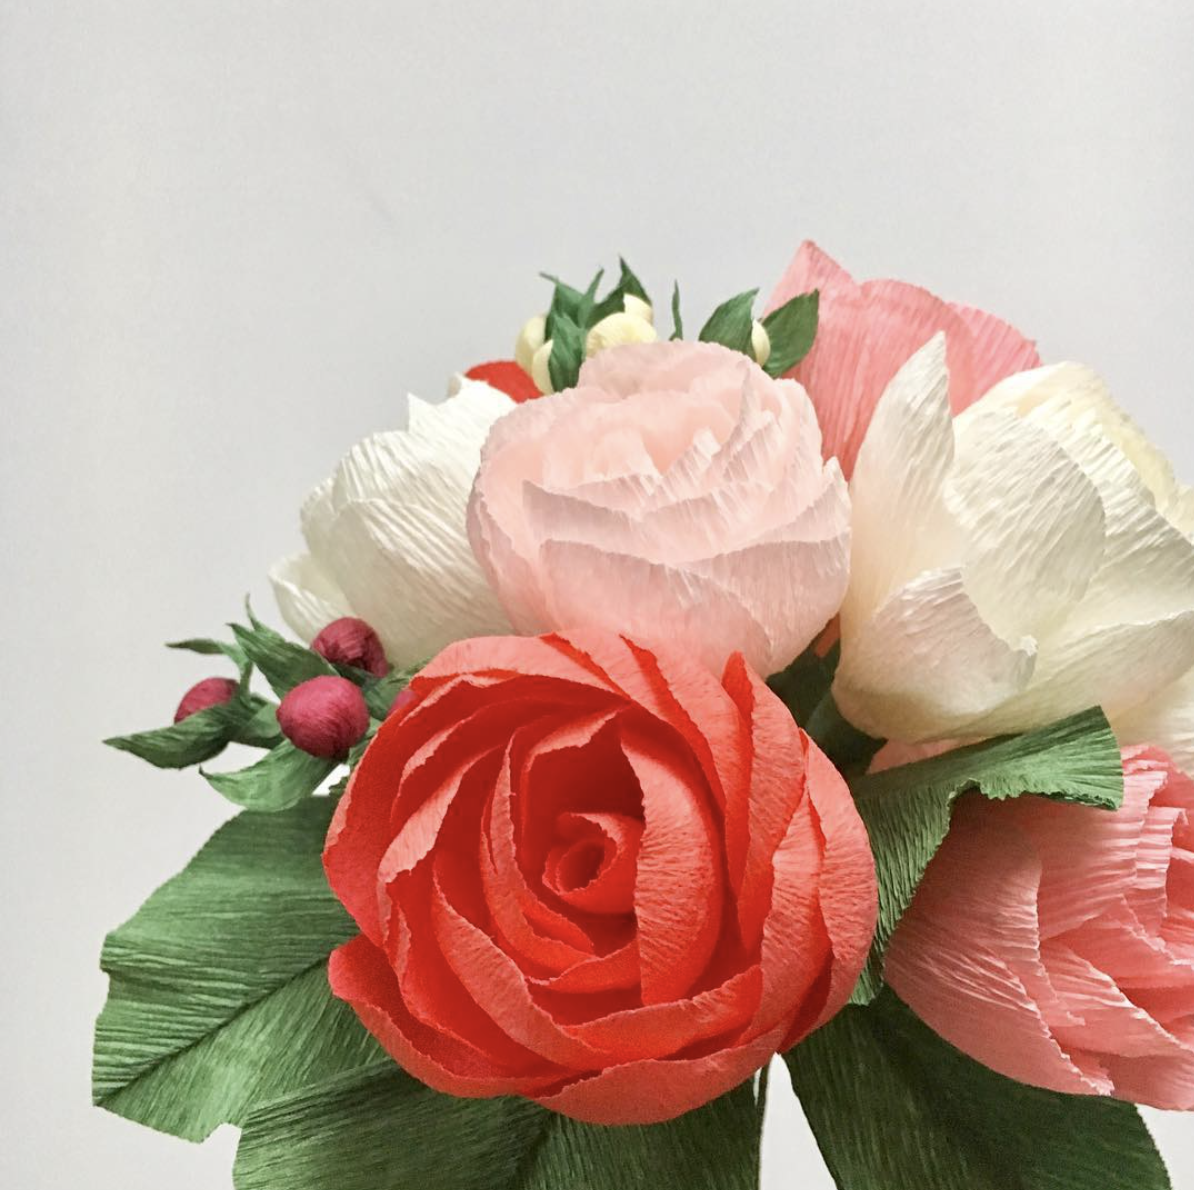 Paper flower nycpaper flowers by little paper flowers nyc 2 best anniversary paper flower bouquet by little paper flowers nyc www anniversary paper flower bouquet by little mightylinksfo